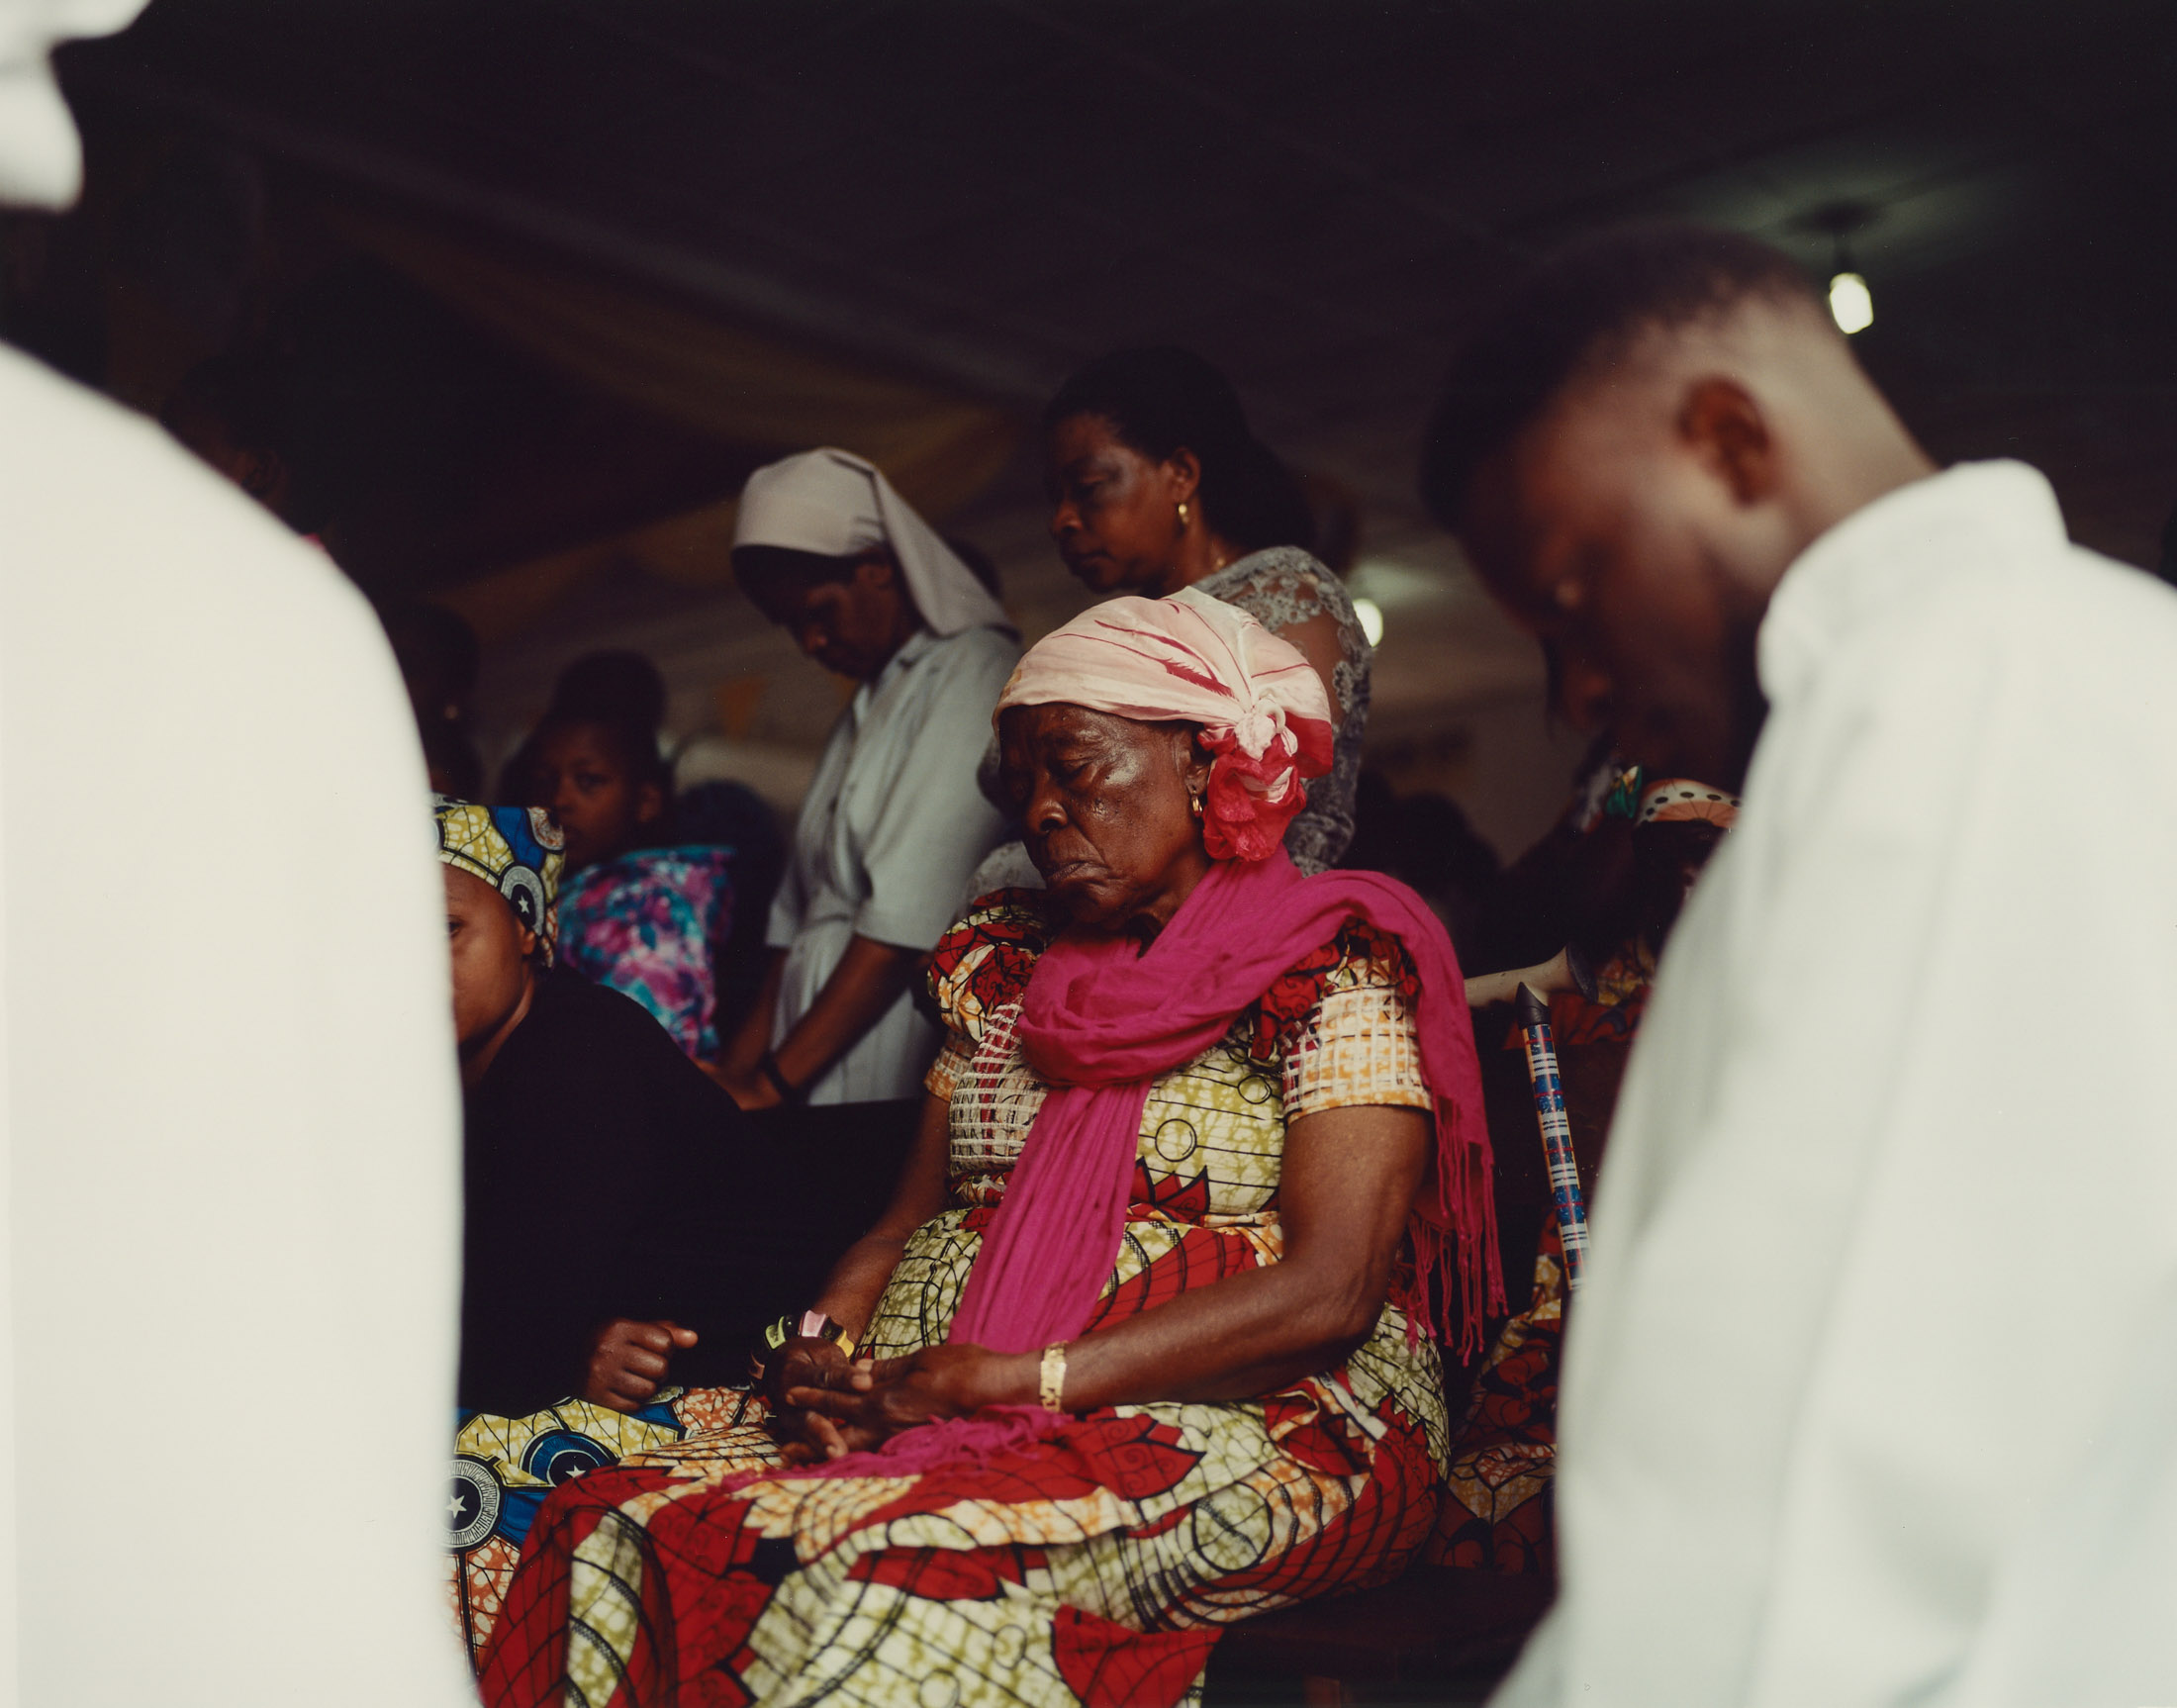 Silent prayer at the end of a Sunday service at the Anuarite de Goma church, North Kivu Province, Eastern DRC.